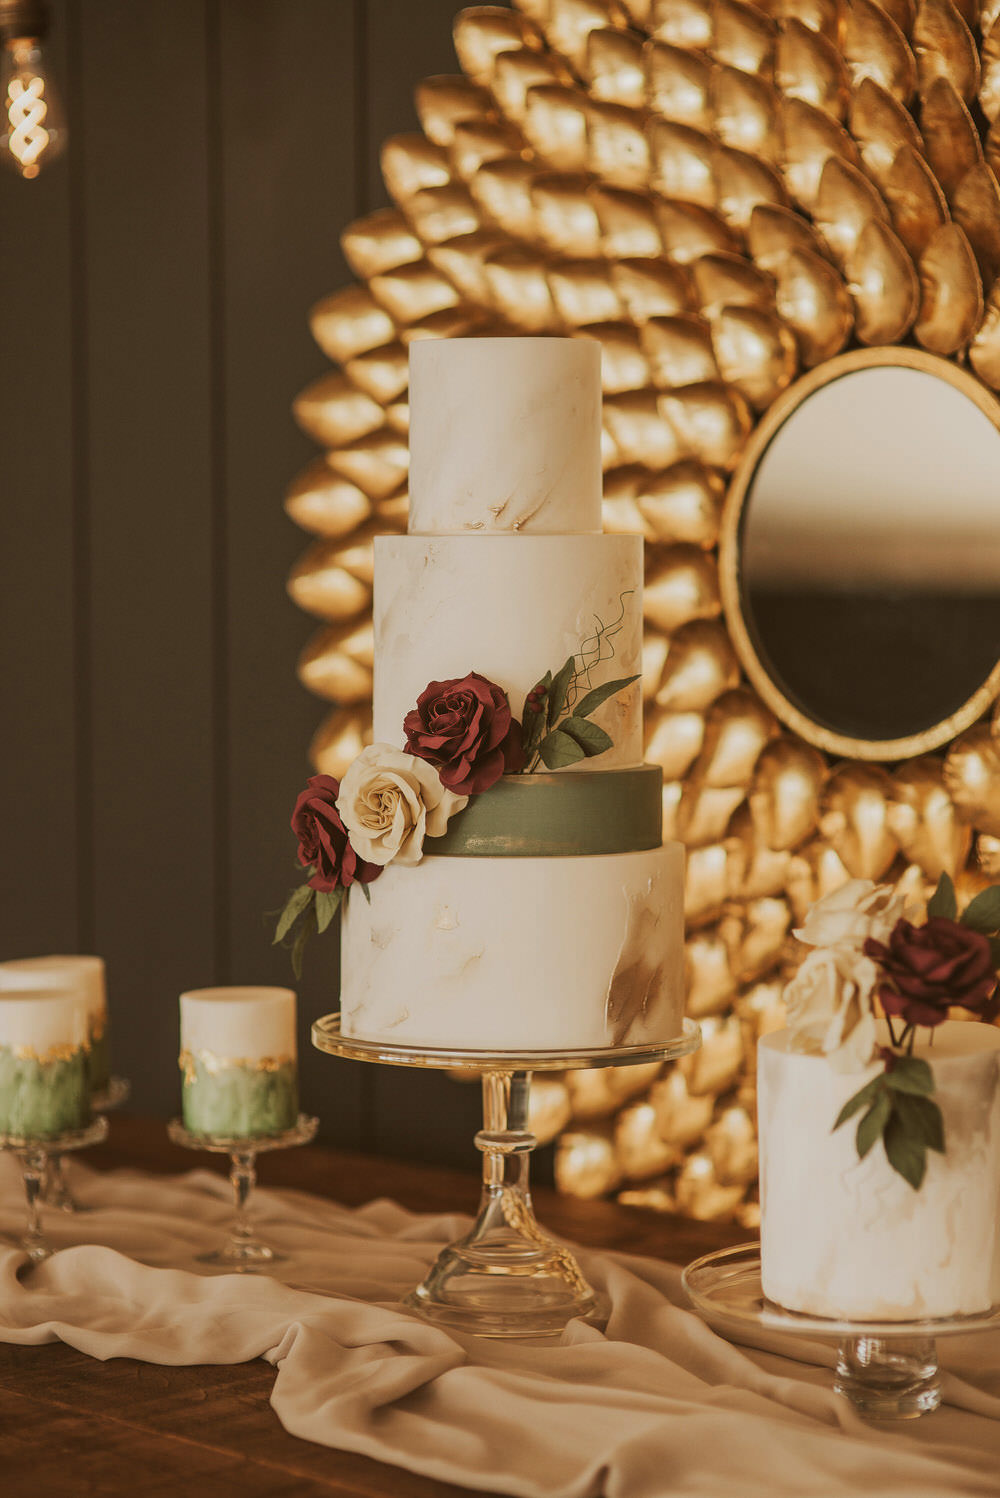 Cake Table Desserts Cakes Flowers Floral Green Gold Wedding Ideas Samantha Davis Photography